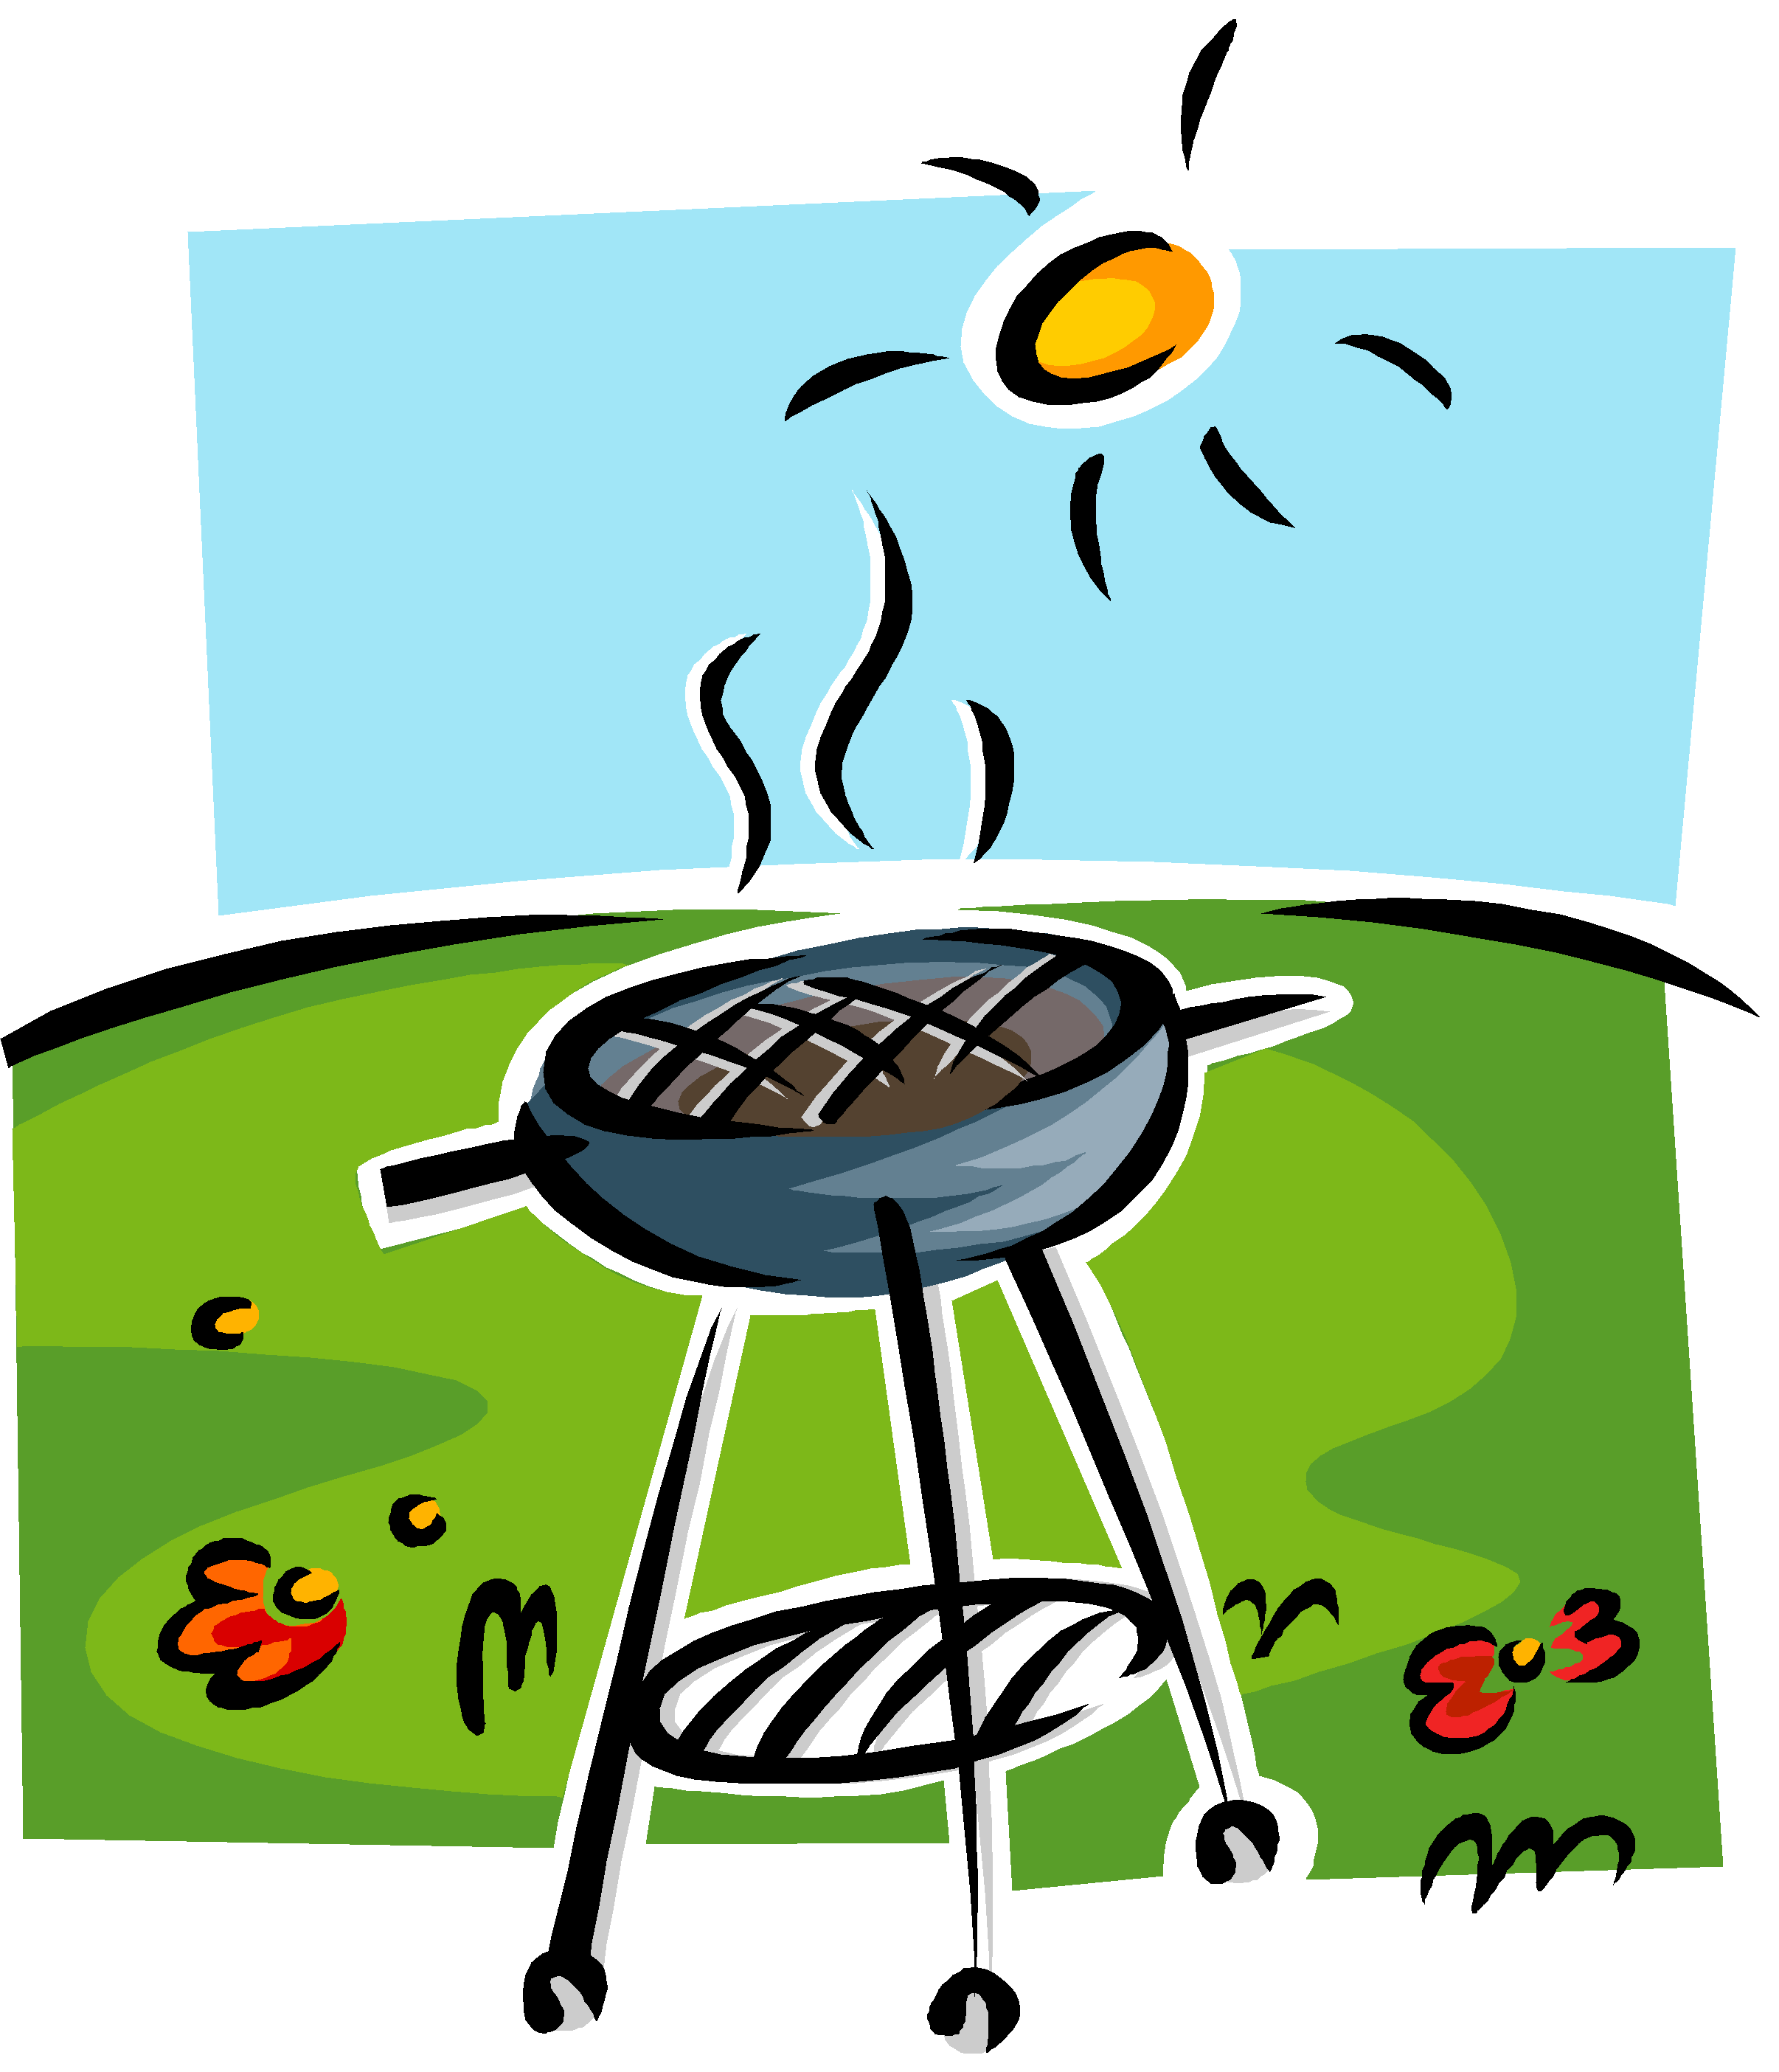 grilling clipart hot dog grill